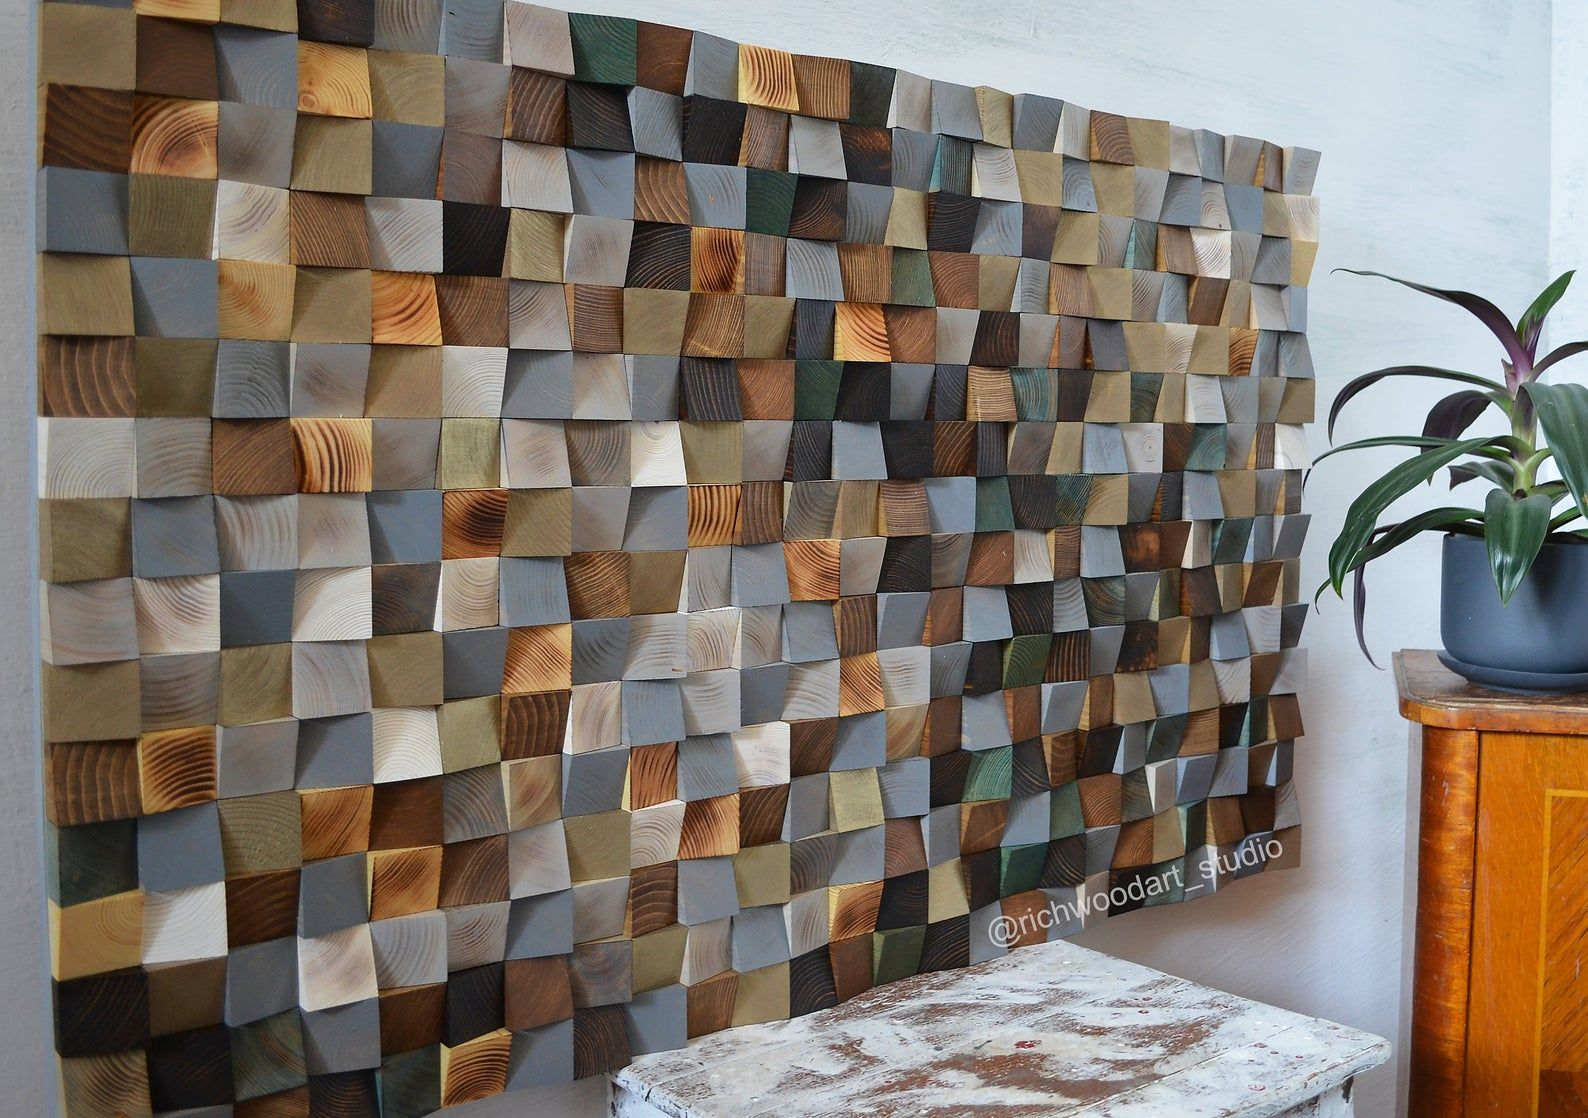 Spring Awakening Scandinavian Wood Wall Art Modern Wood Wall Sculpture Abstract Wood Painting In Gray White Brown Natural In 2020 Wood Wall Sculpture Brown Wall Art Wood Wall